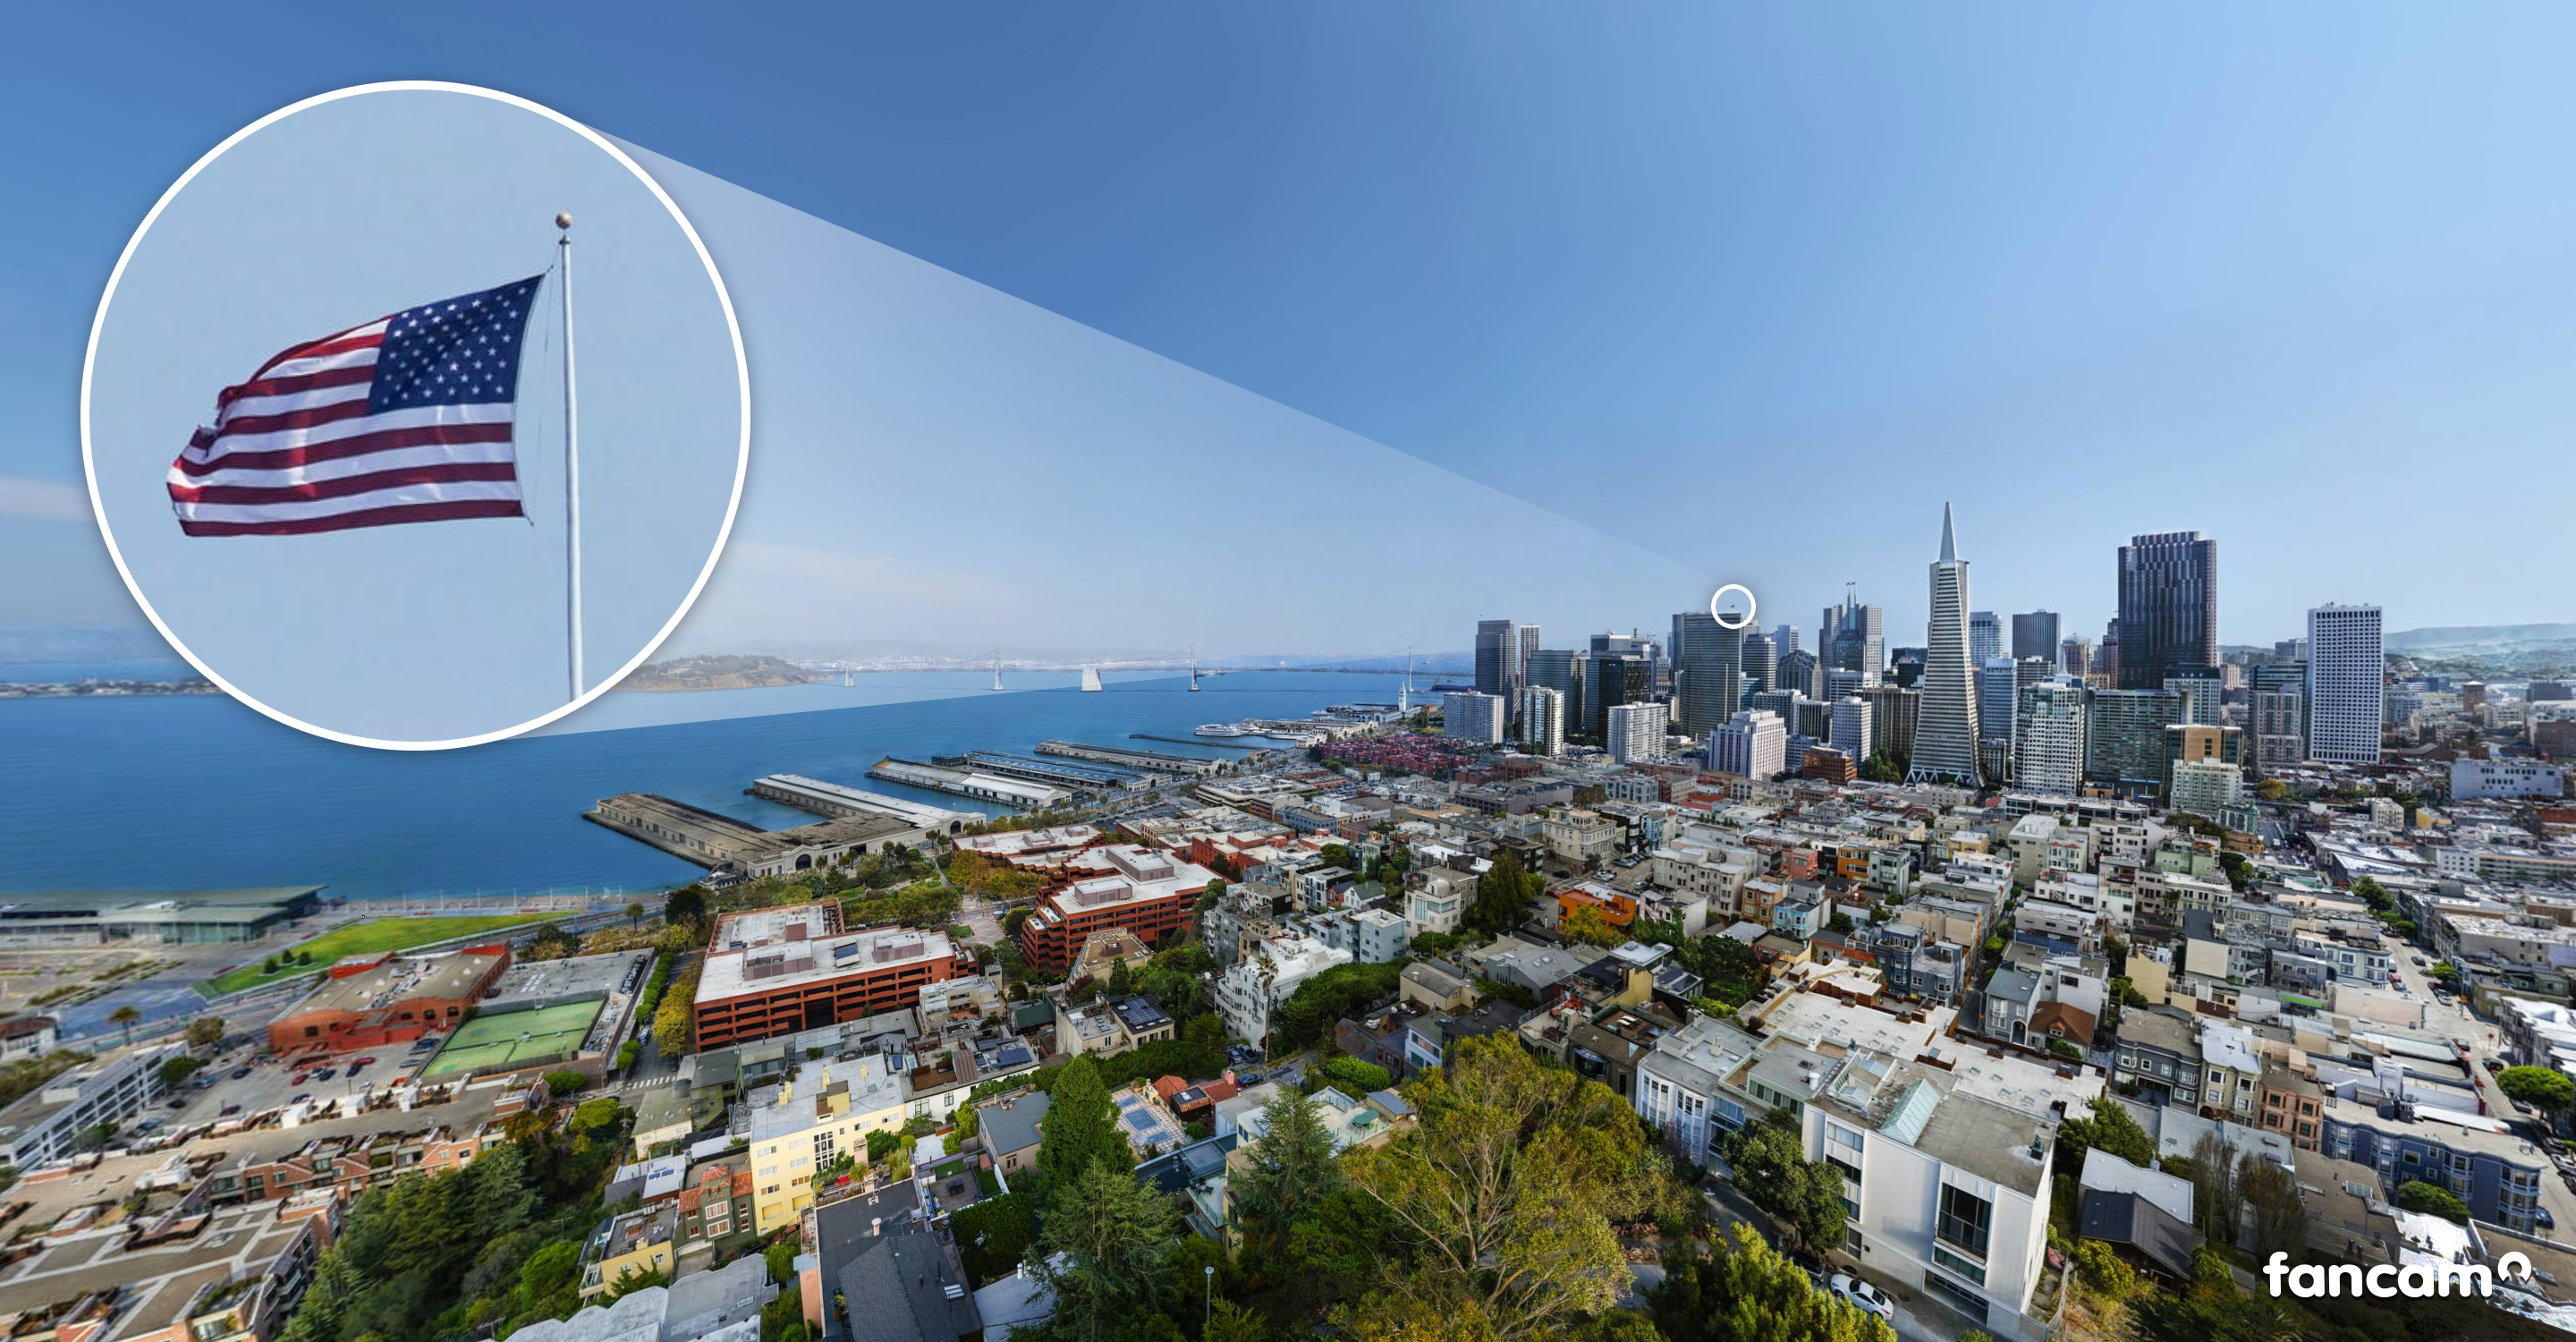 Bud Light CityCam – The highest resolution image of San Francisco